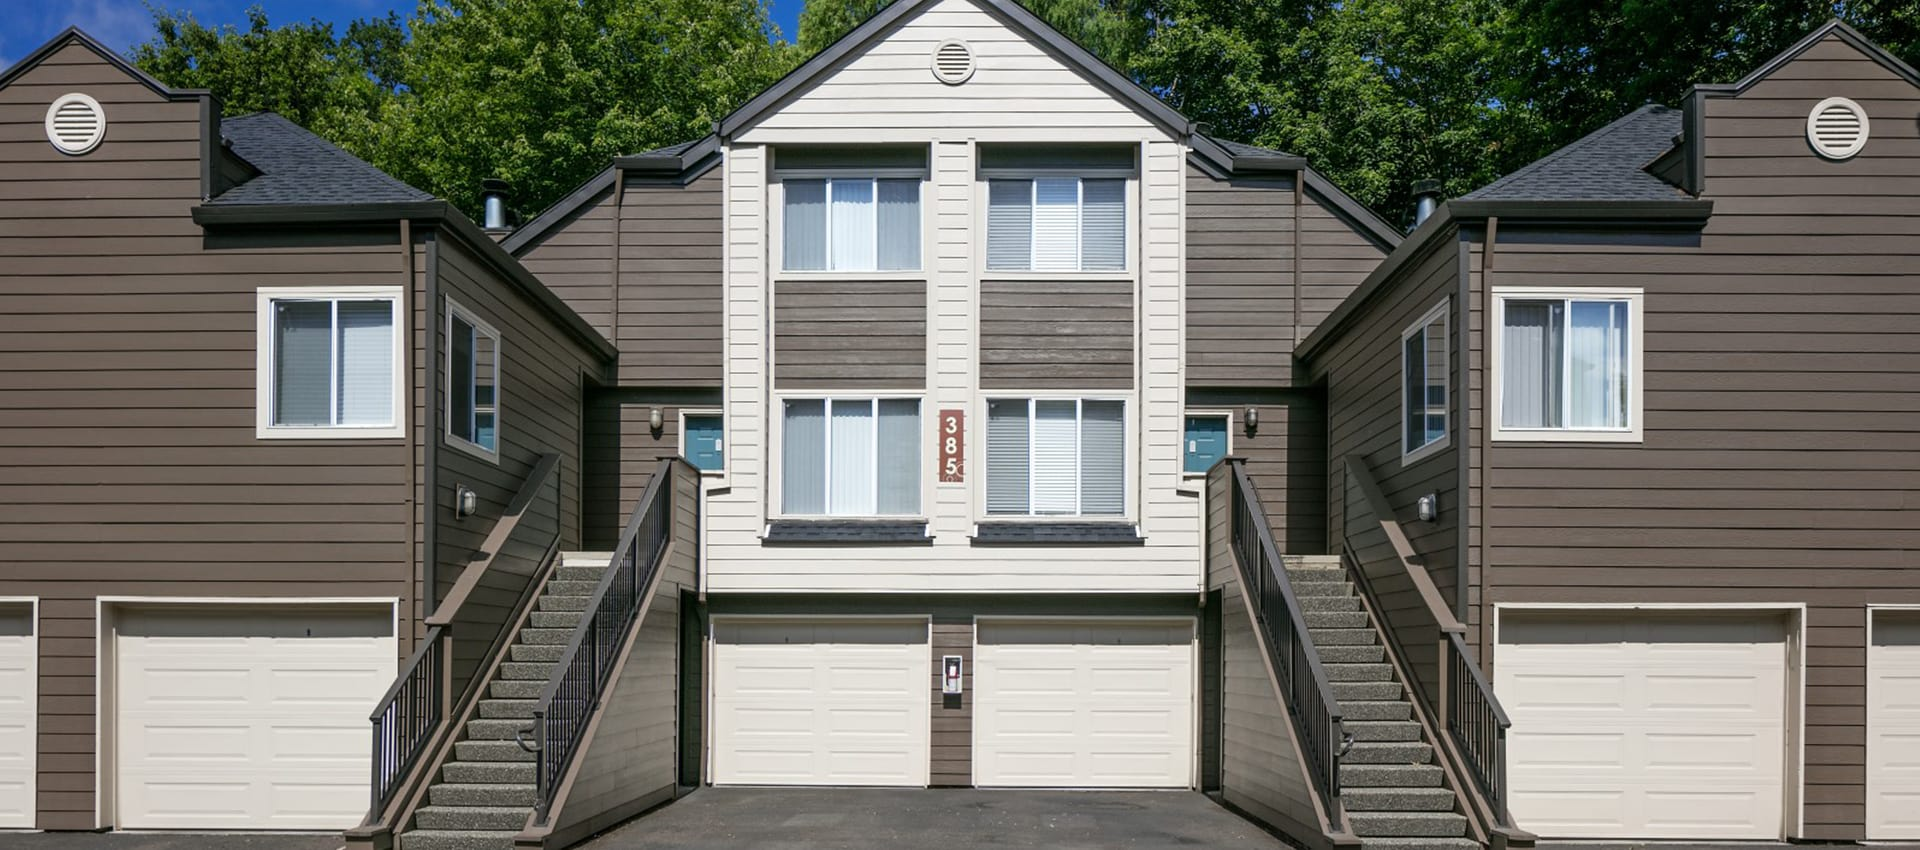 Apartments with Garages at Waterhouse Place in Beaverton, OR